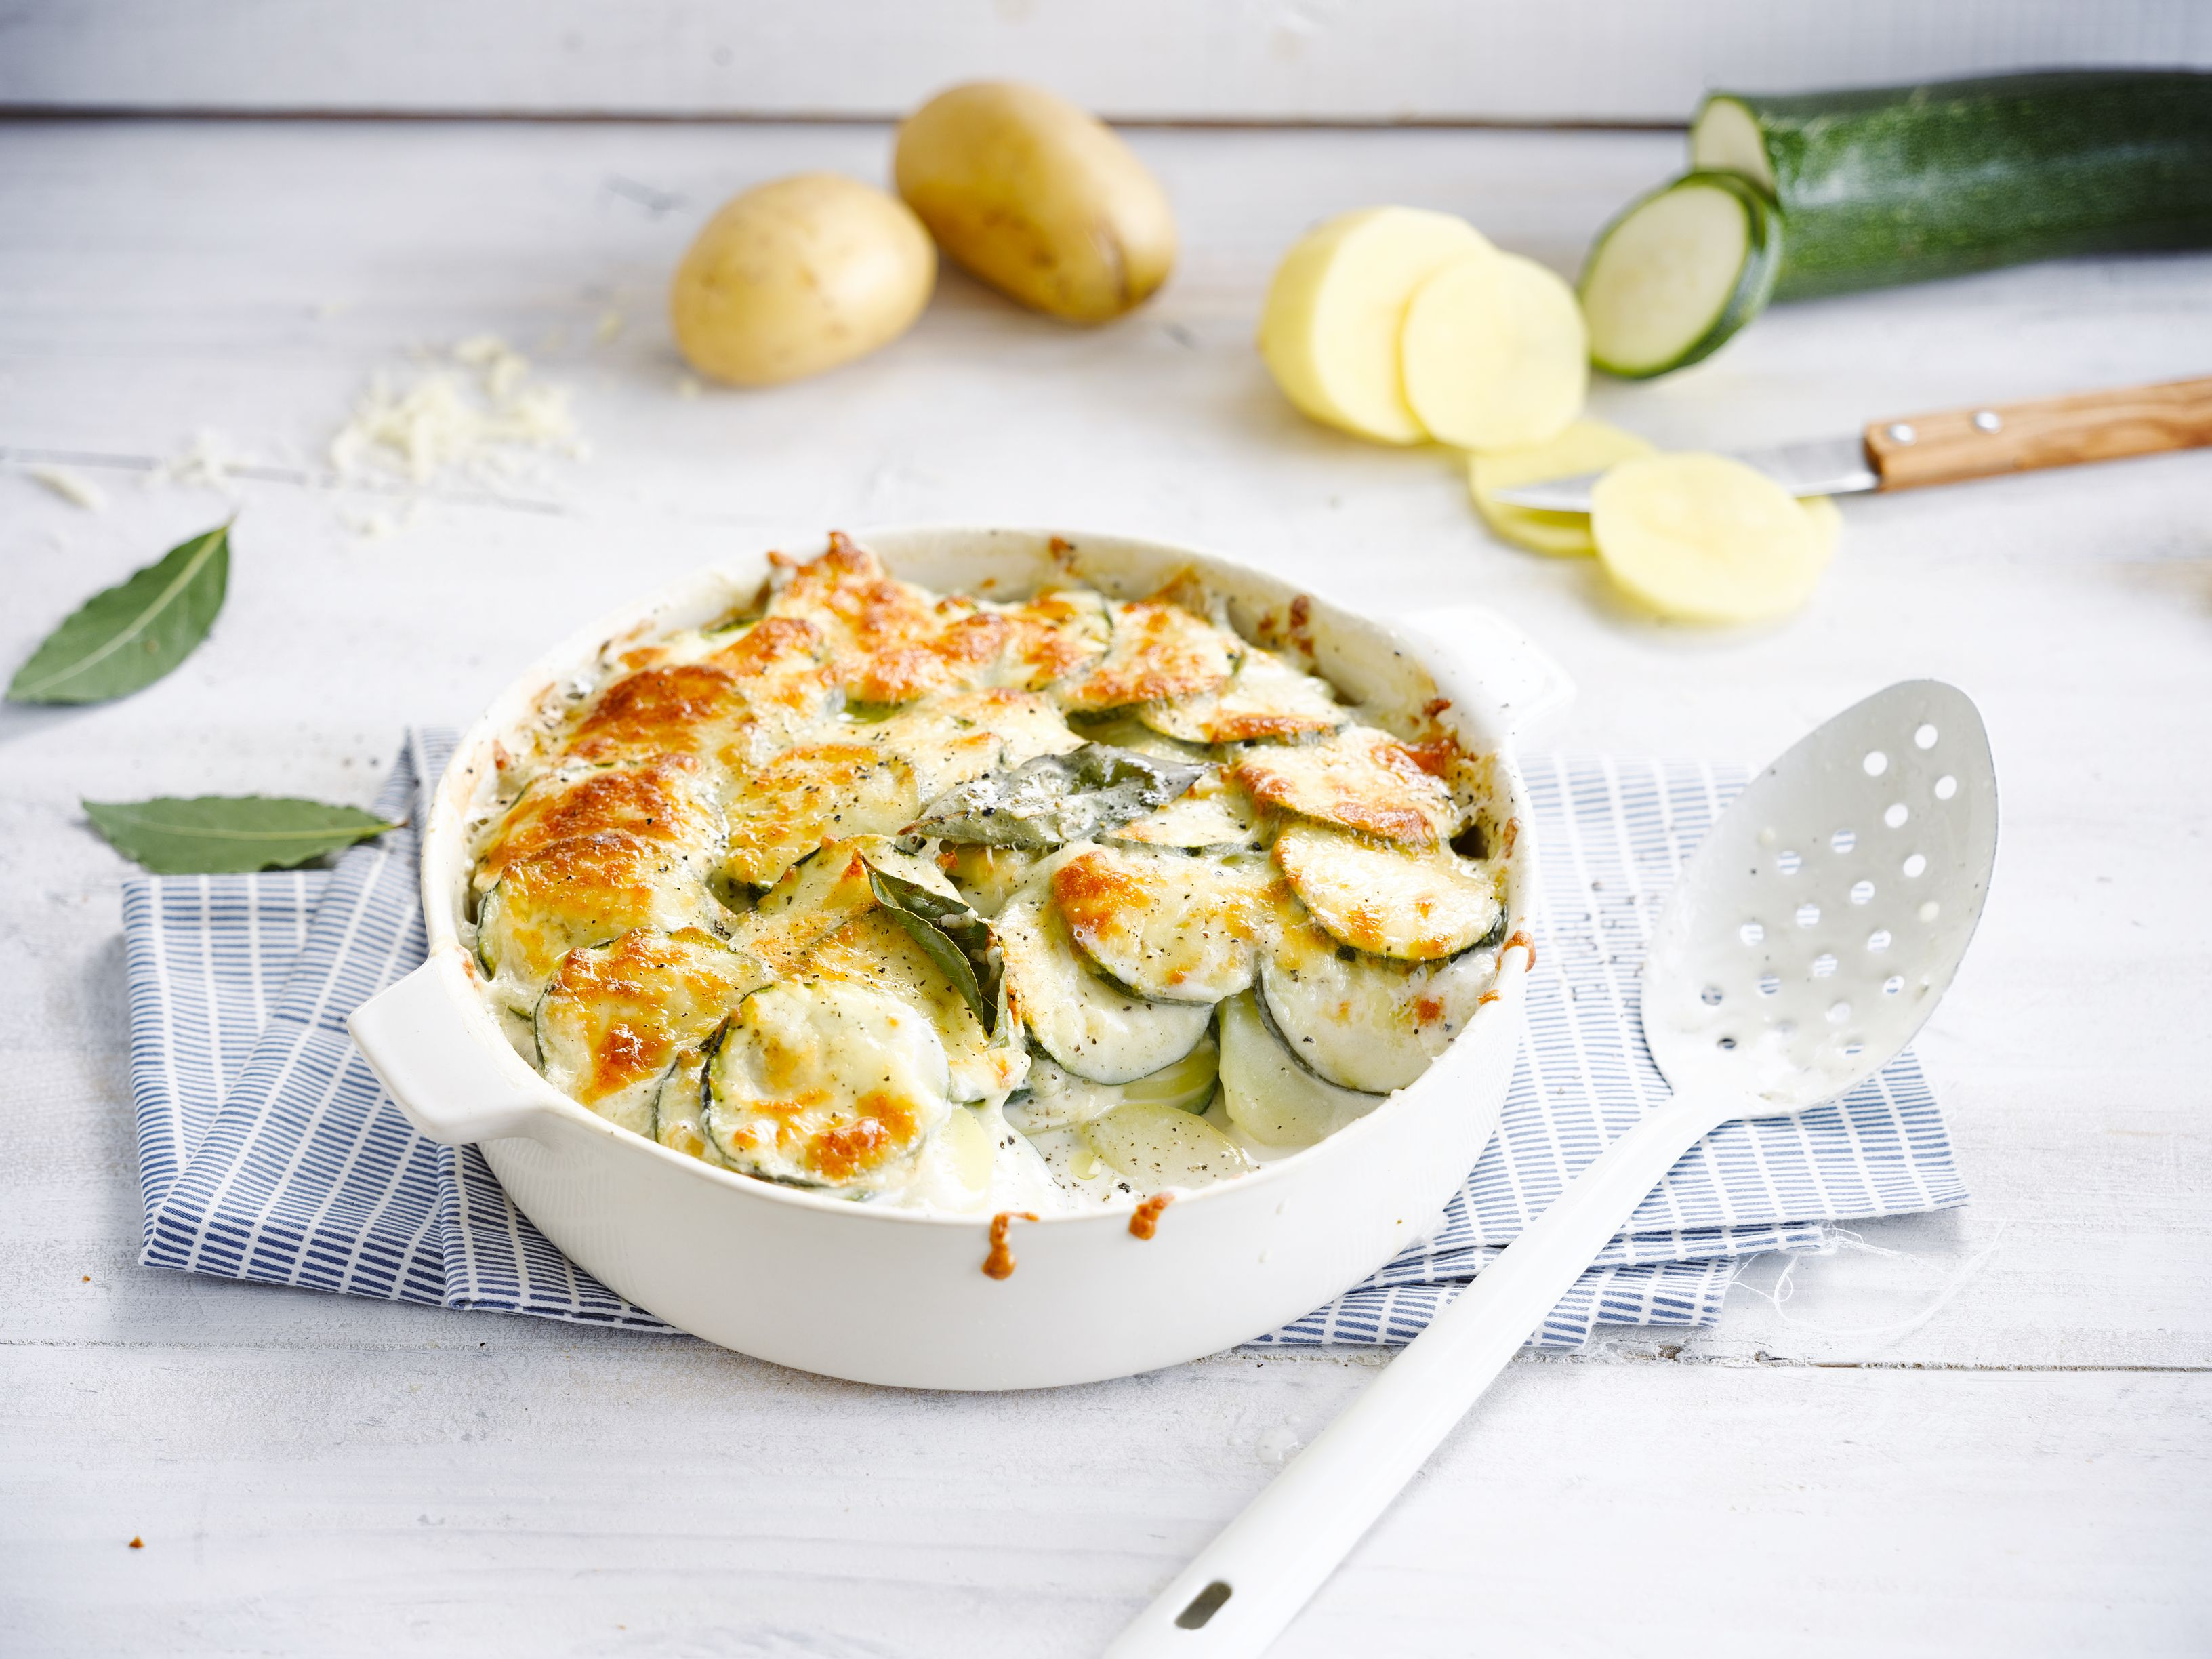 Potato and Courgette Dauphinoise